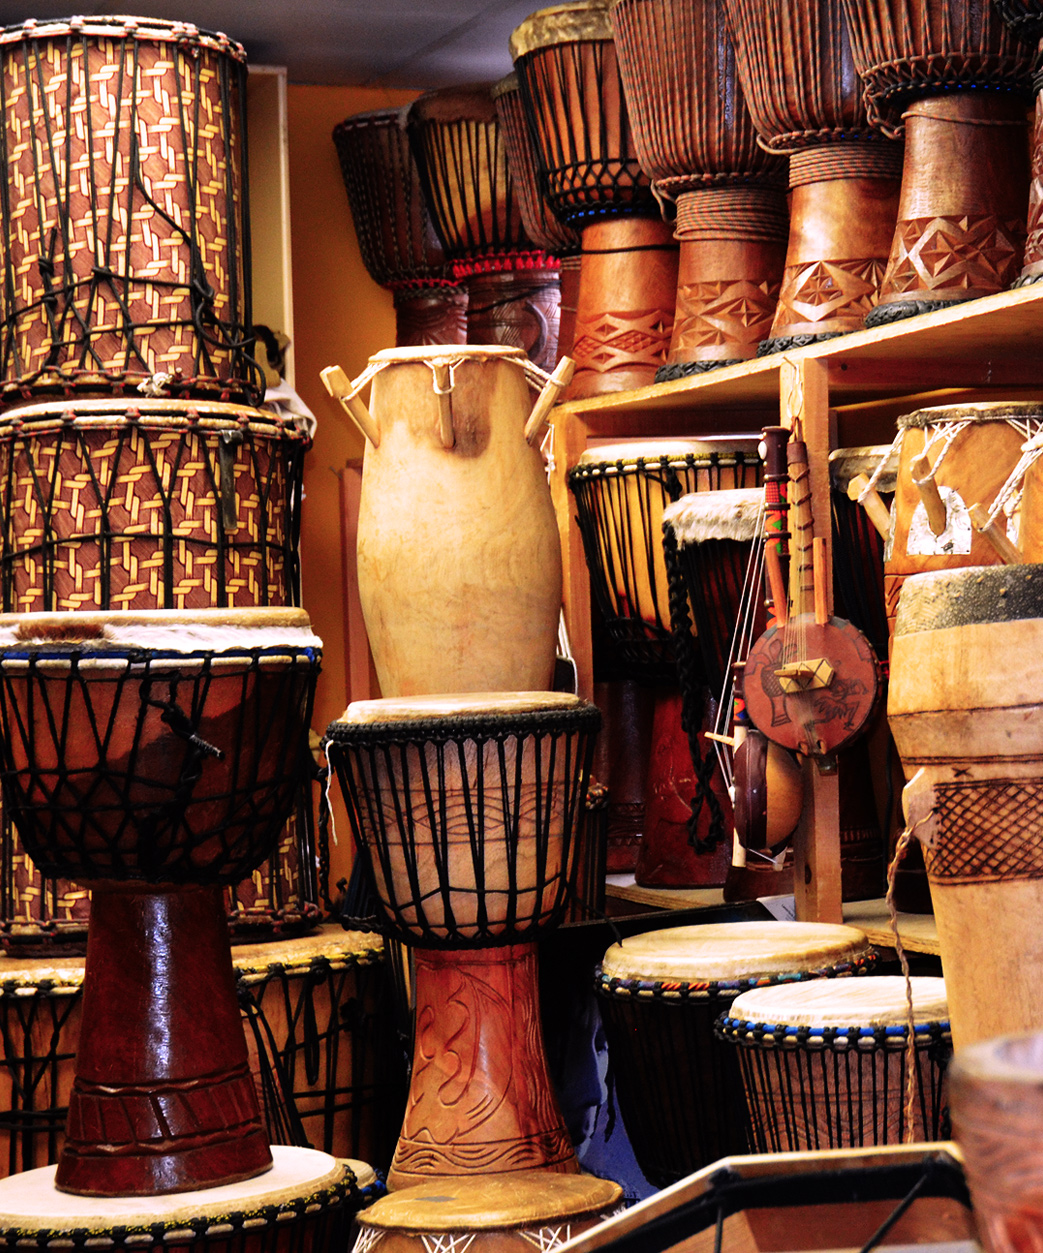 African Drums and Art Crafts Saikou Kensington Market Dundas St West Toronto Canada Shop Workshops Lessons Classes Masks Furniture Fabric Drum Circles Crafts Performances Shows Entertainment